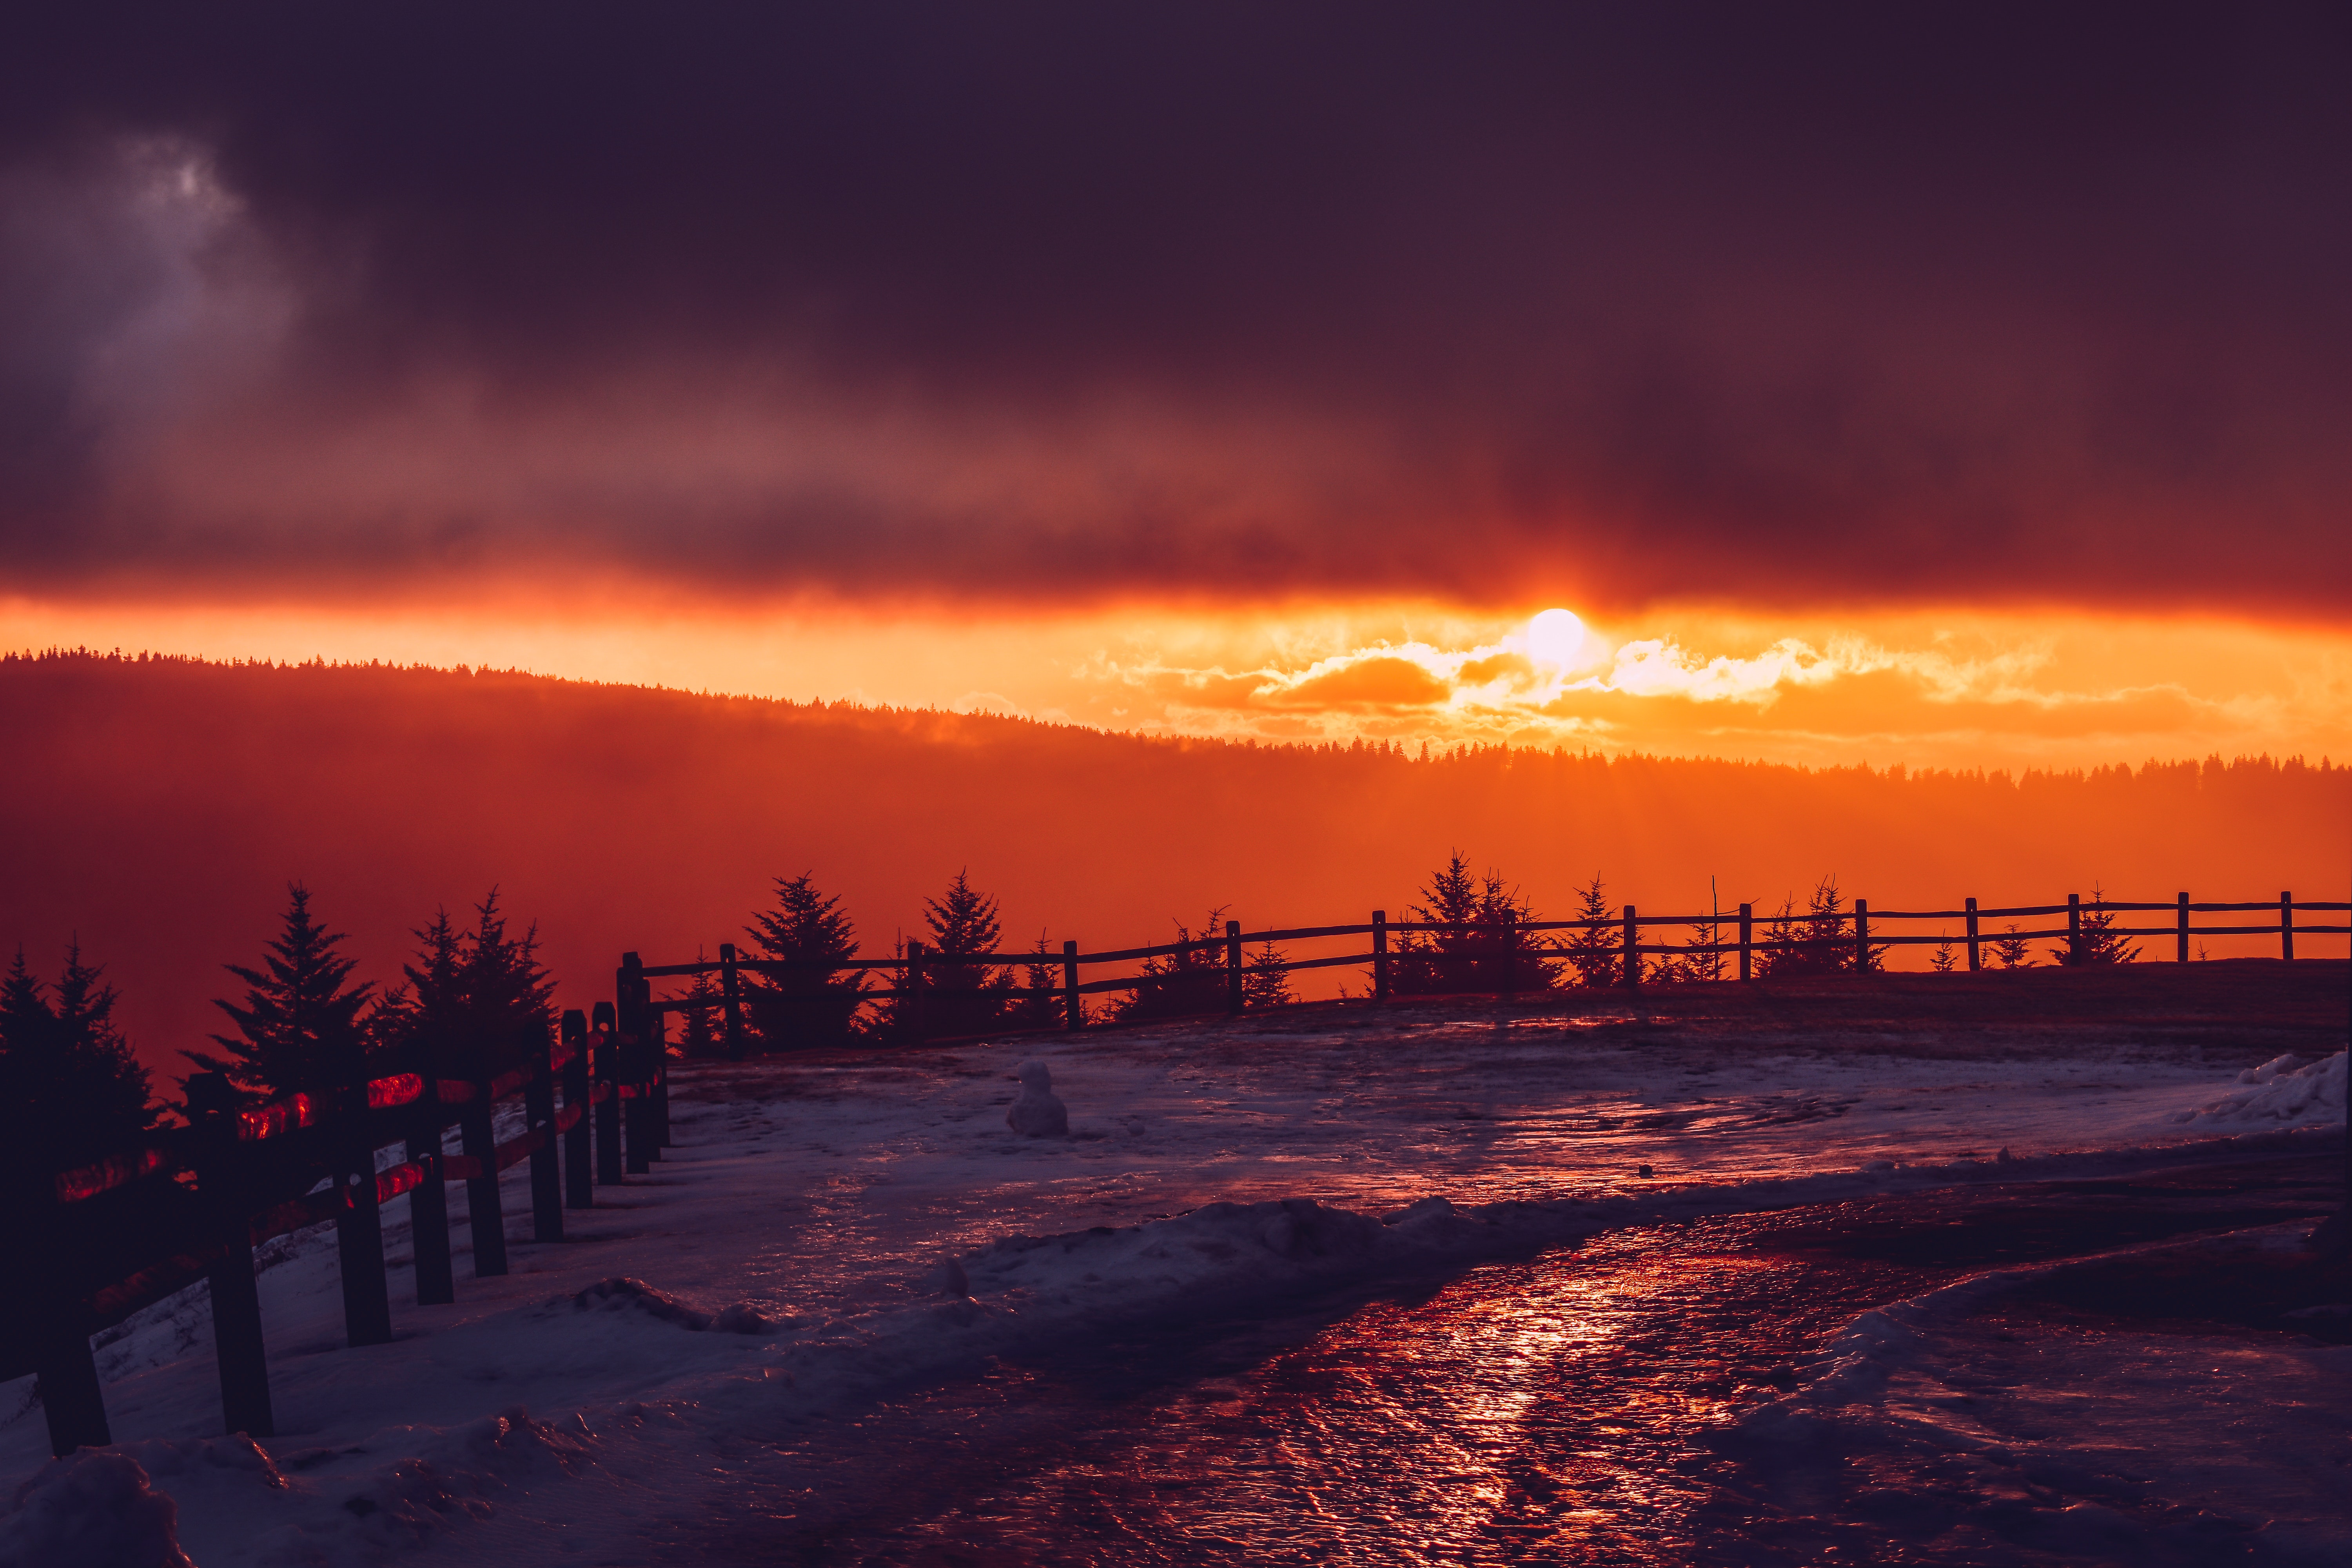 131128 download wallpaper Winter, Snow, Nature, Sunset, Mountains, Fence screensavers and pictures for free